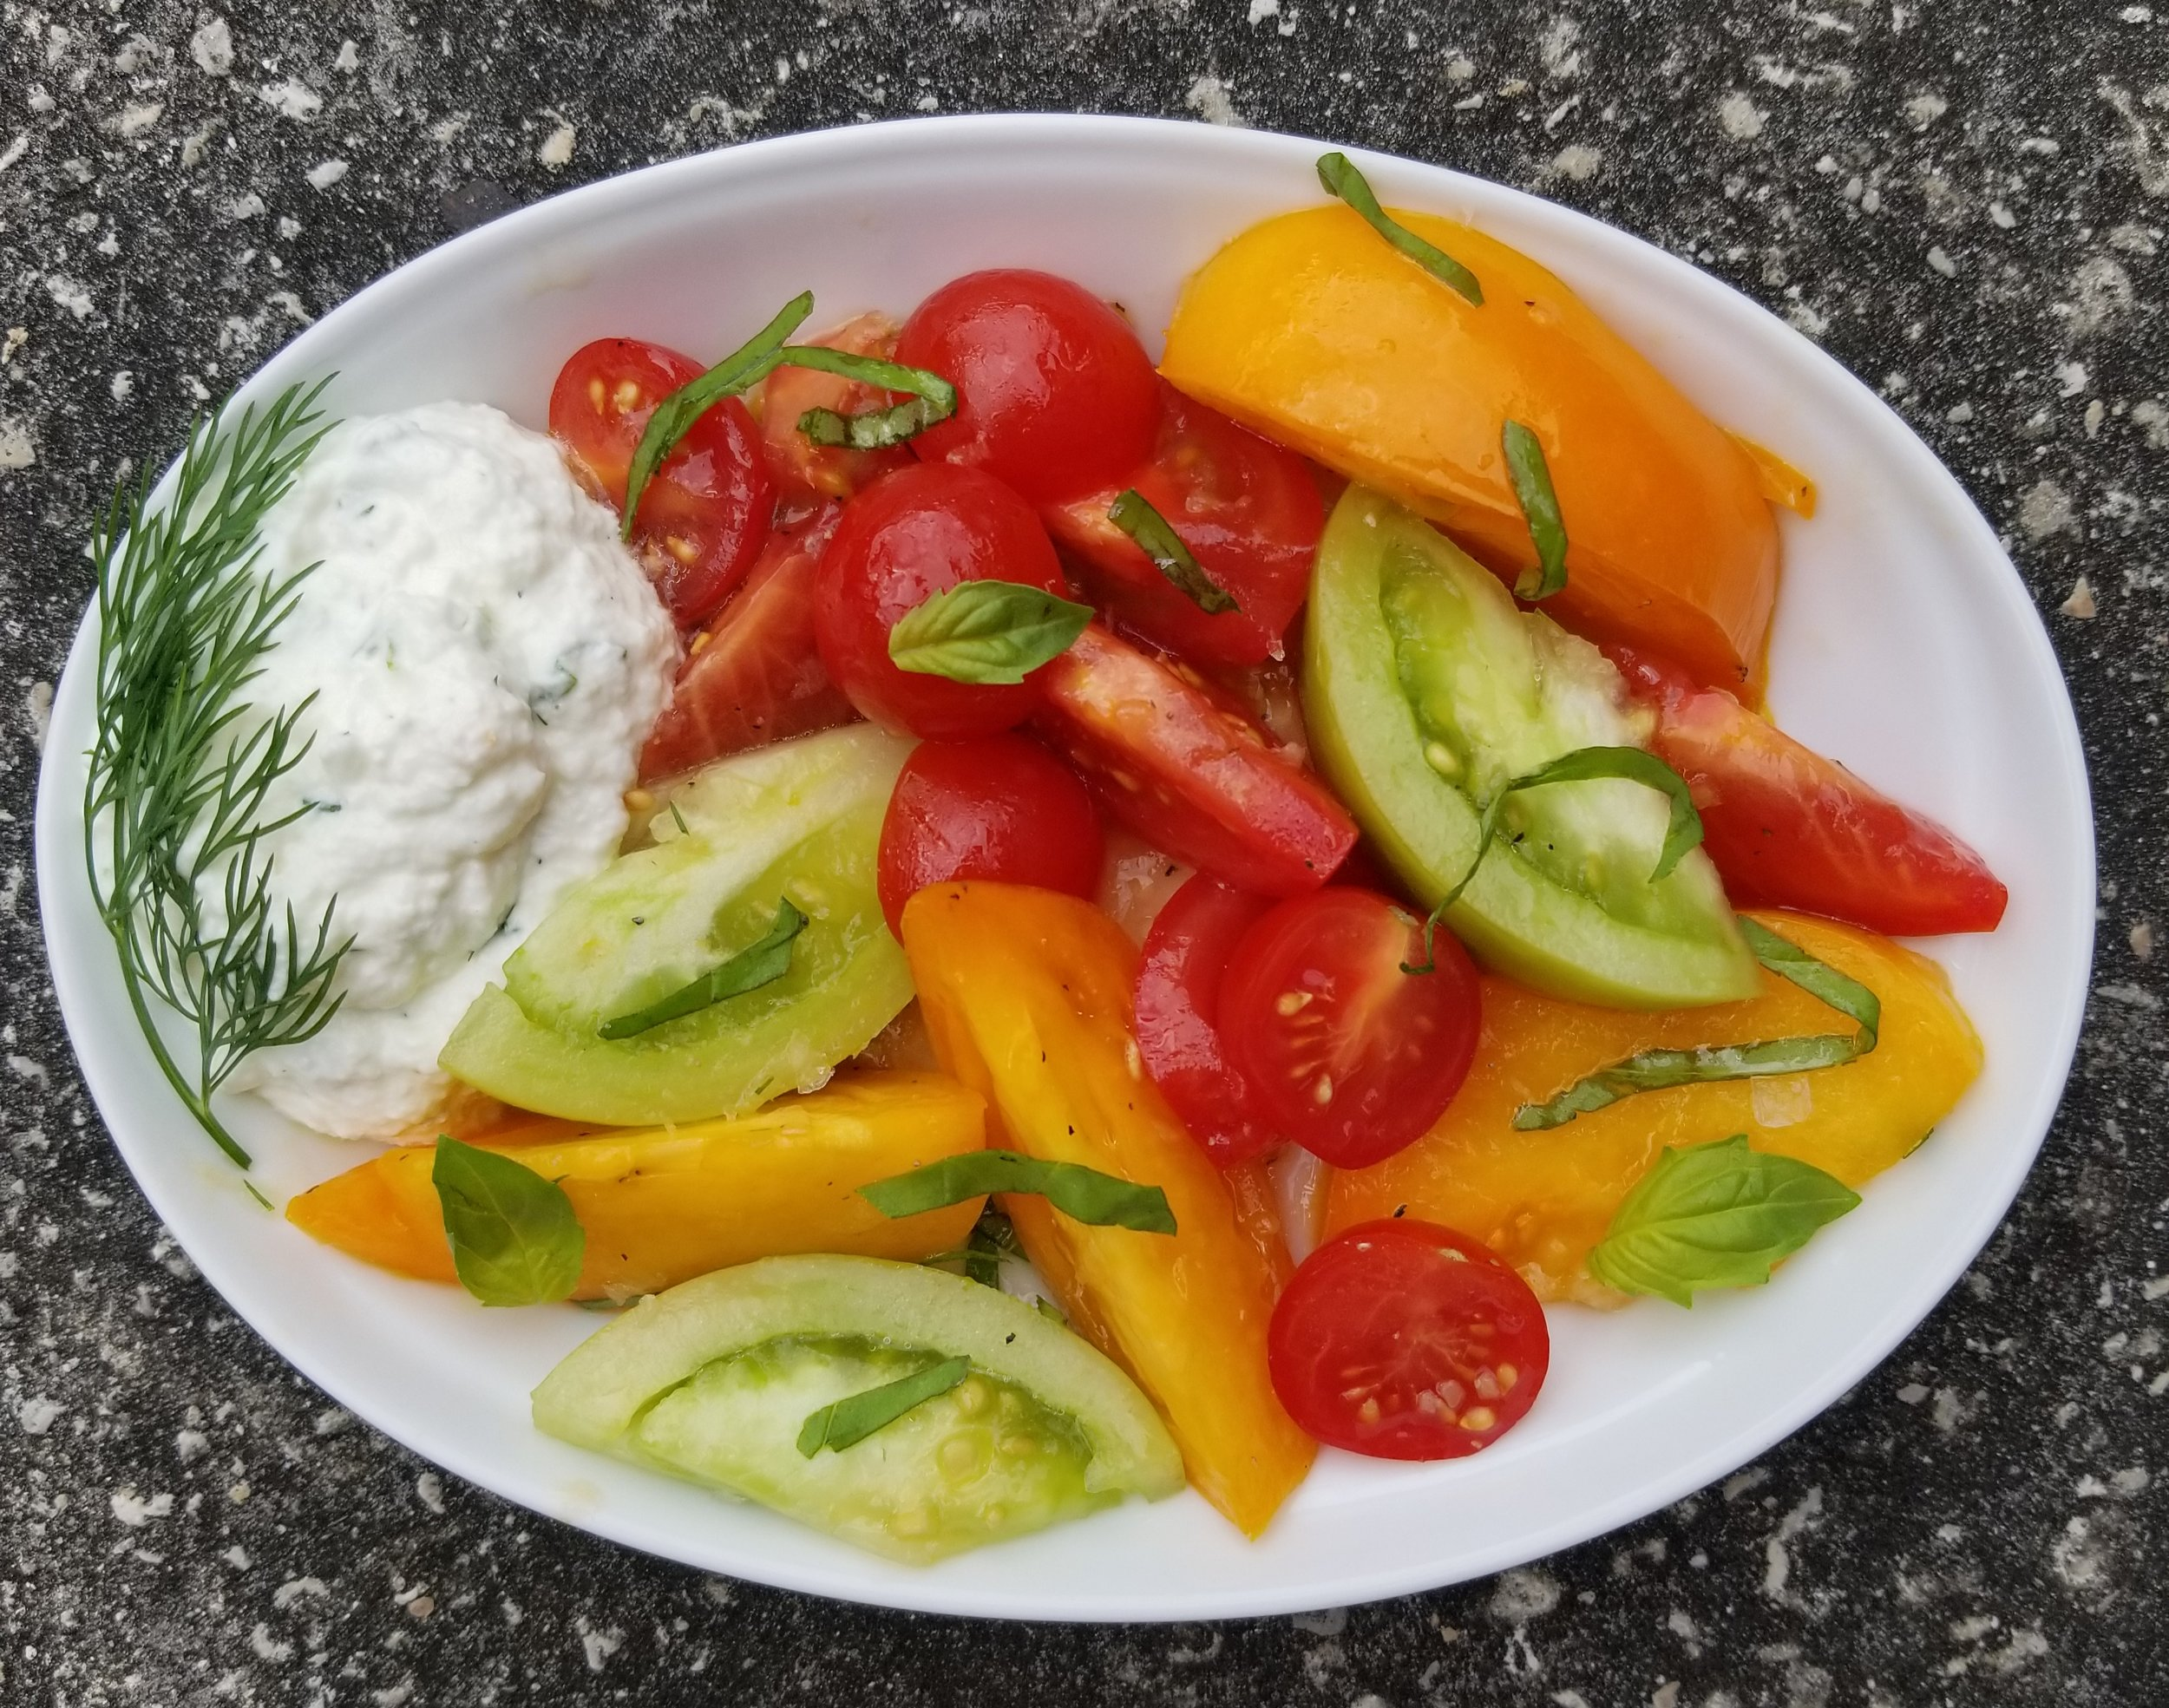 Tomato Salad with Homemade RIcotta